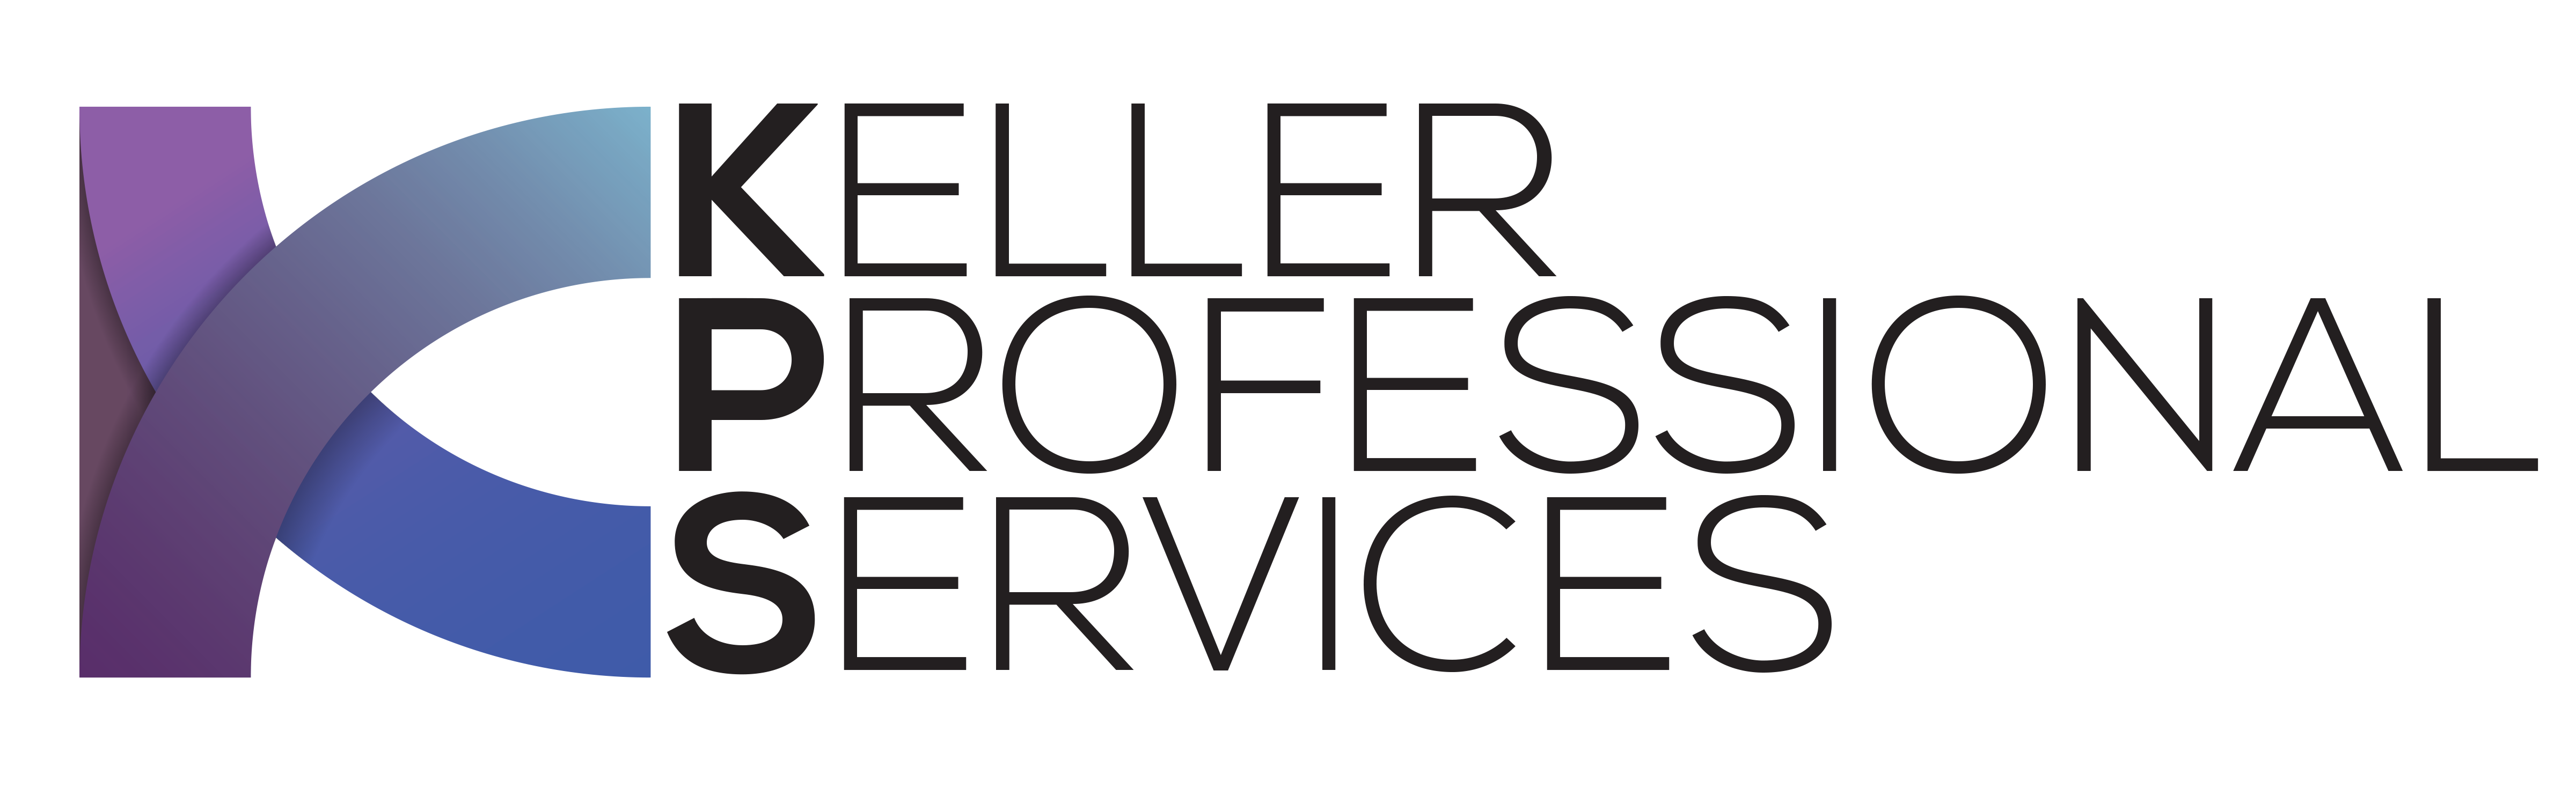 Keller Professional Services, Inc.